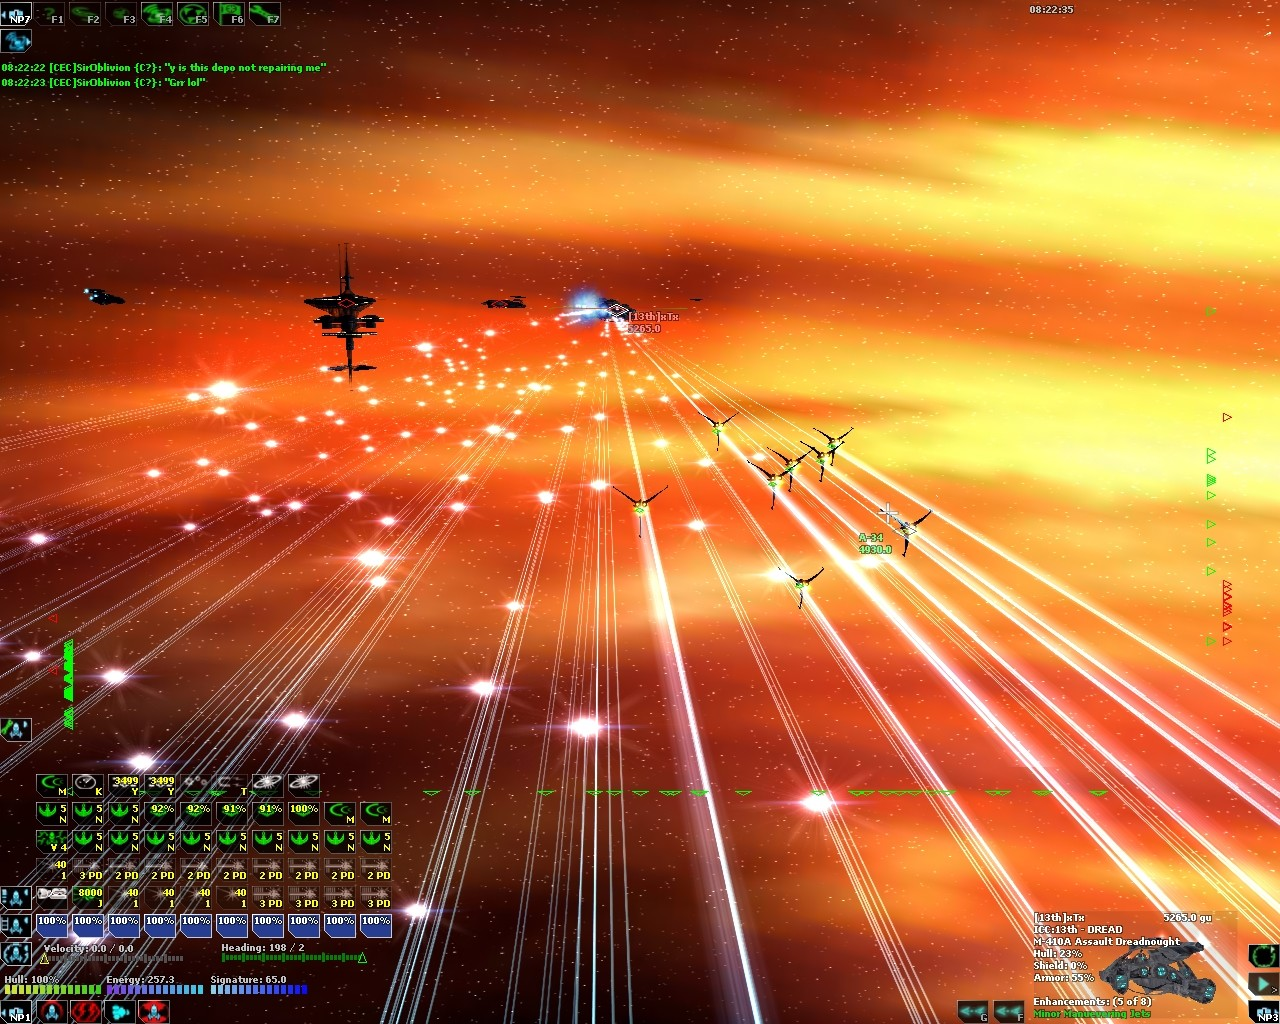 DarkSpace - Fighters attacking an ICC Dreadnought.